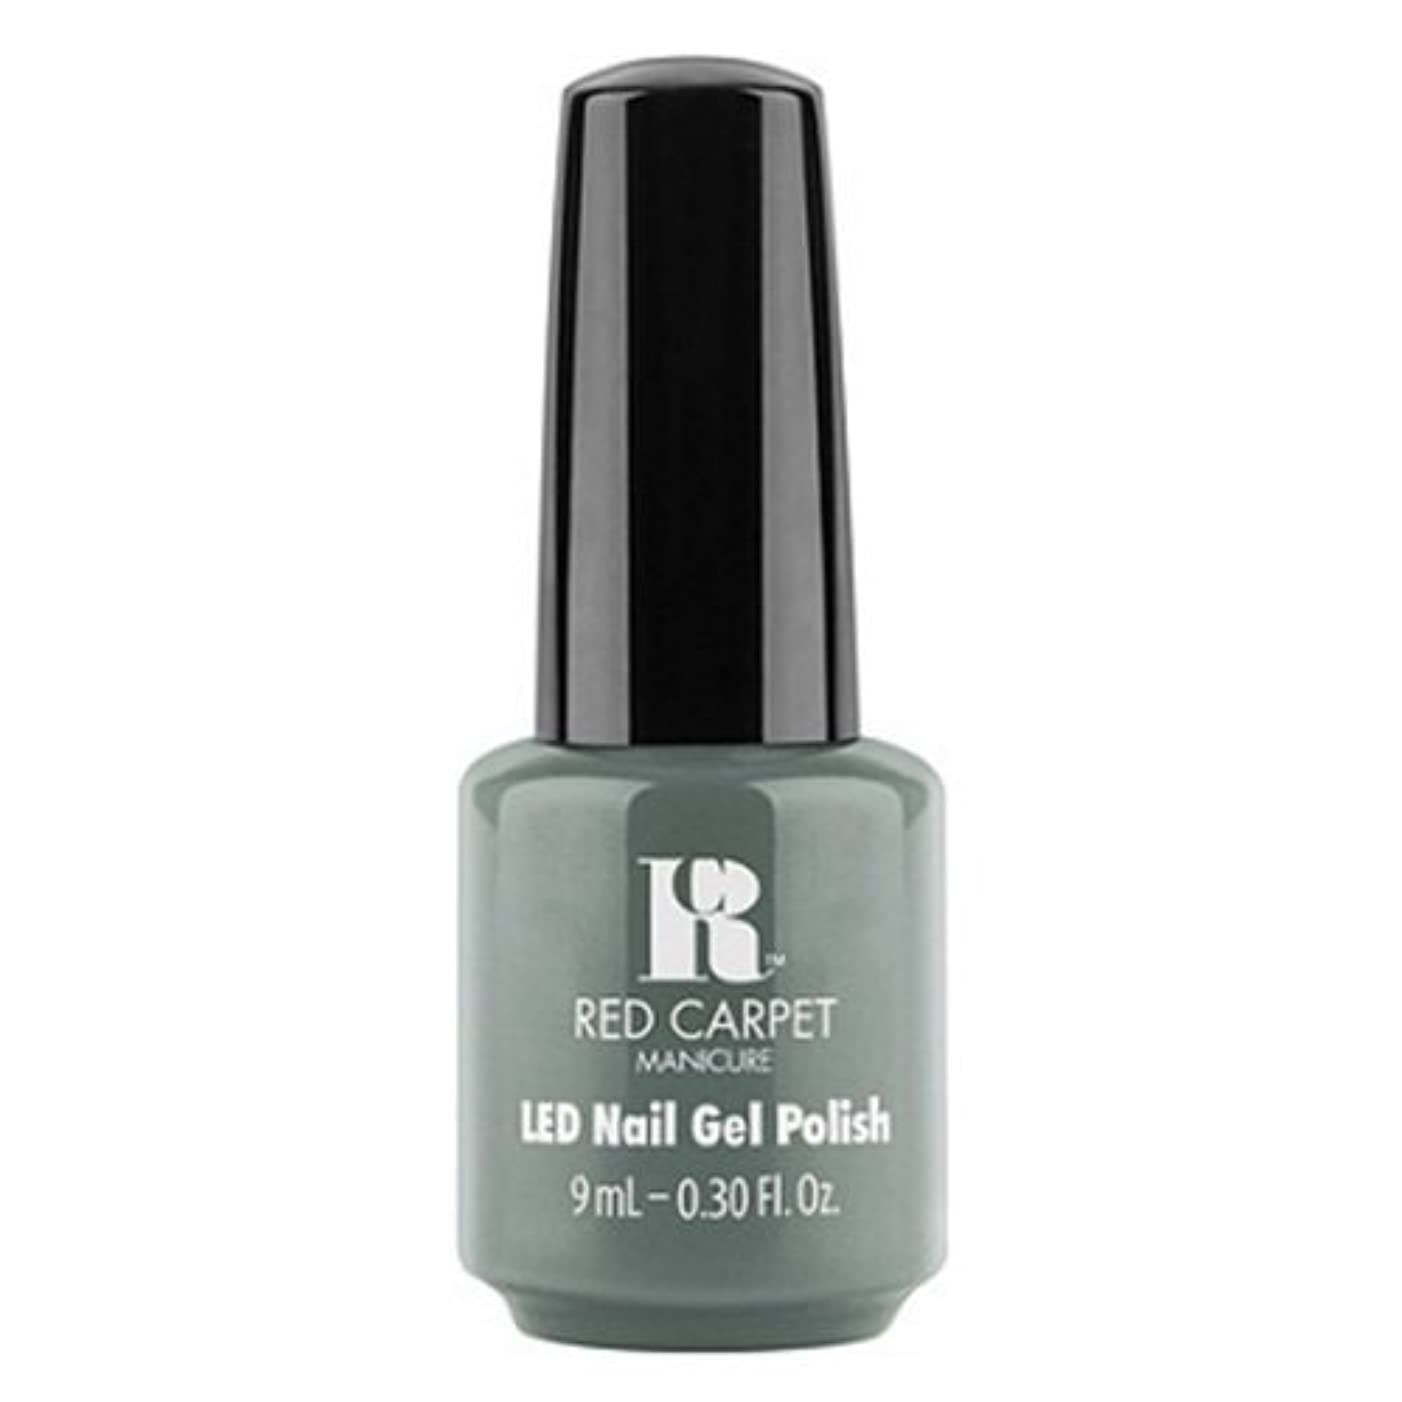 Red Carpet Manicure - LED Nail Gel Polish - No Photos - 0.3oz / 9ml